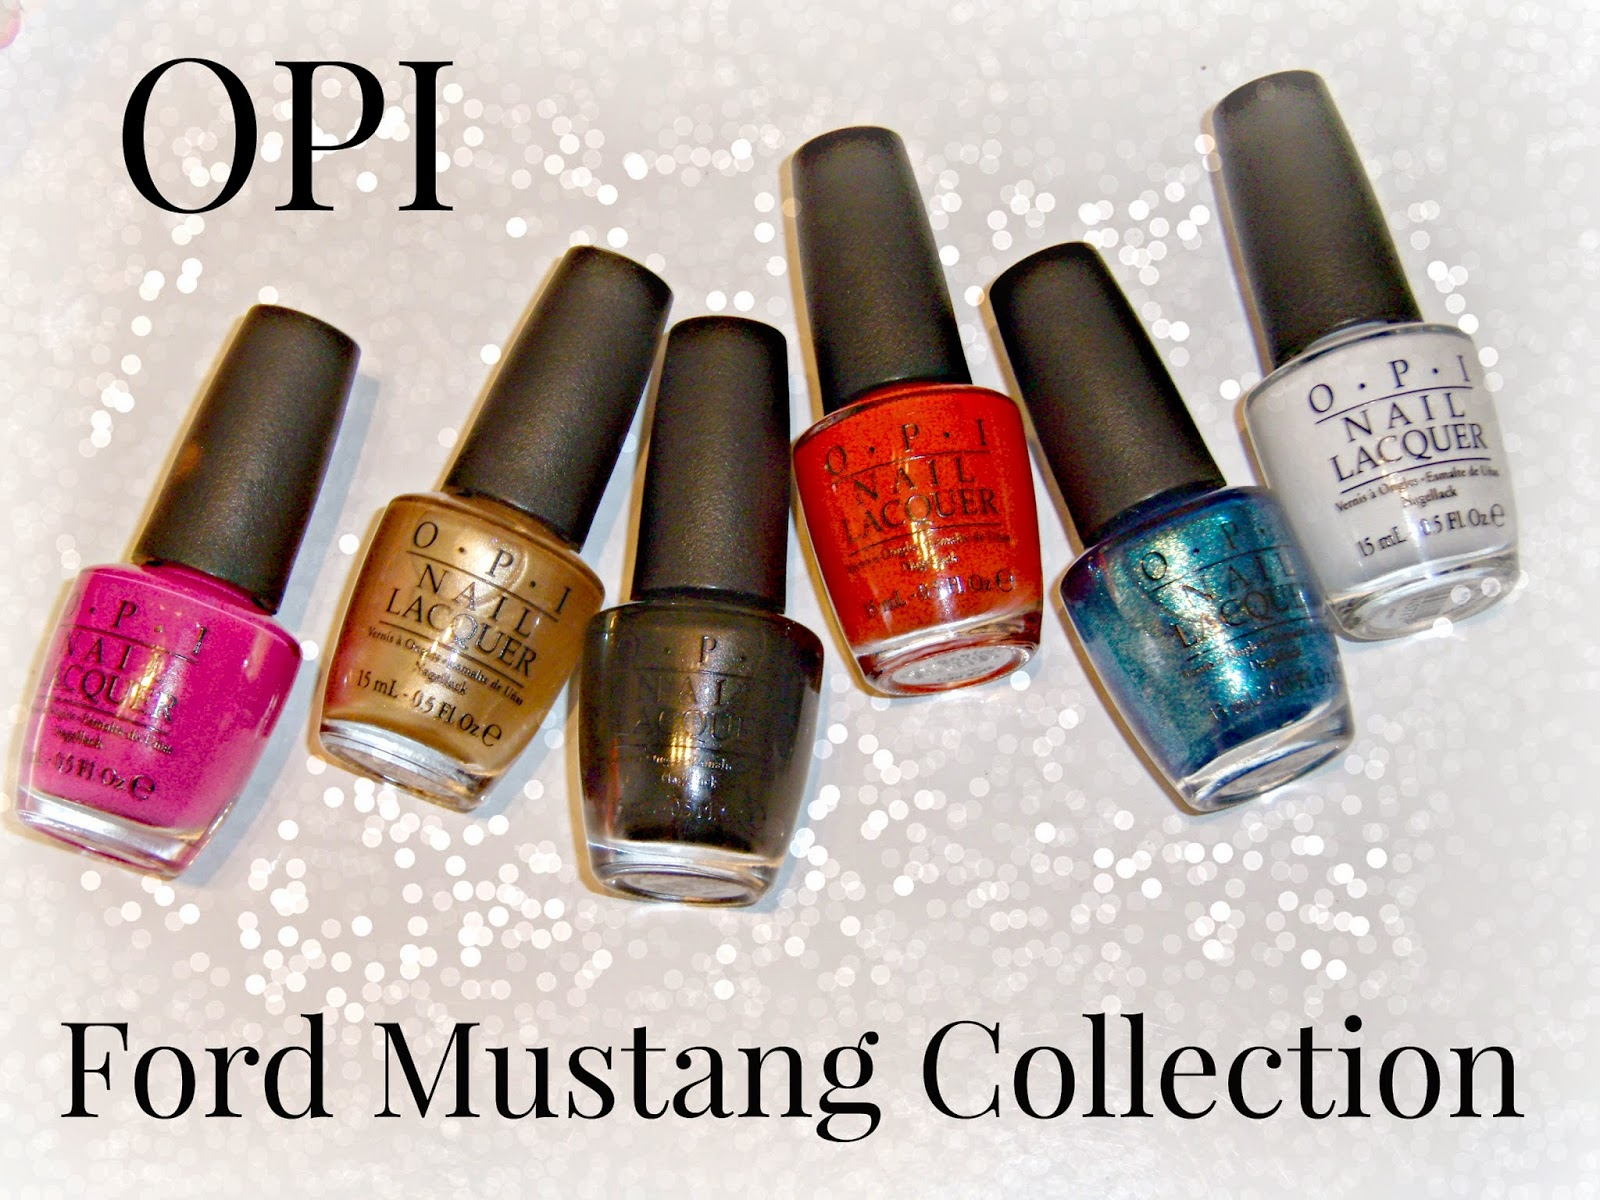 Hey Nail Friends Have You Seen Opi S New Ford Mustang Polishes Check Out The 6 Hot Colors That Make Up This Collection